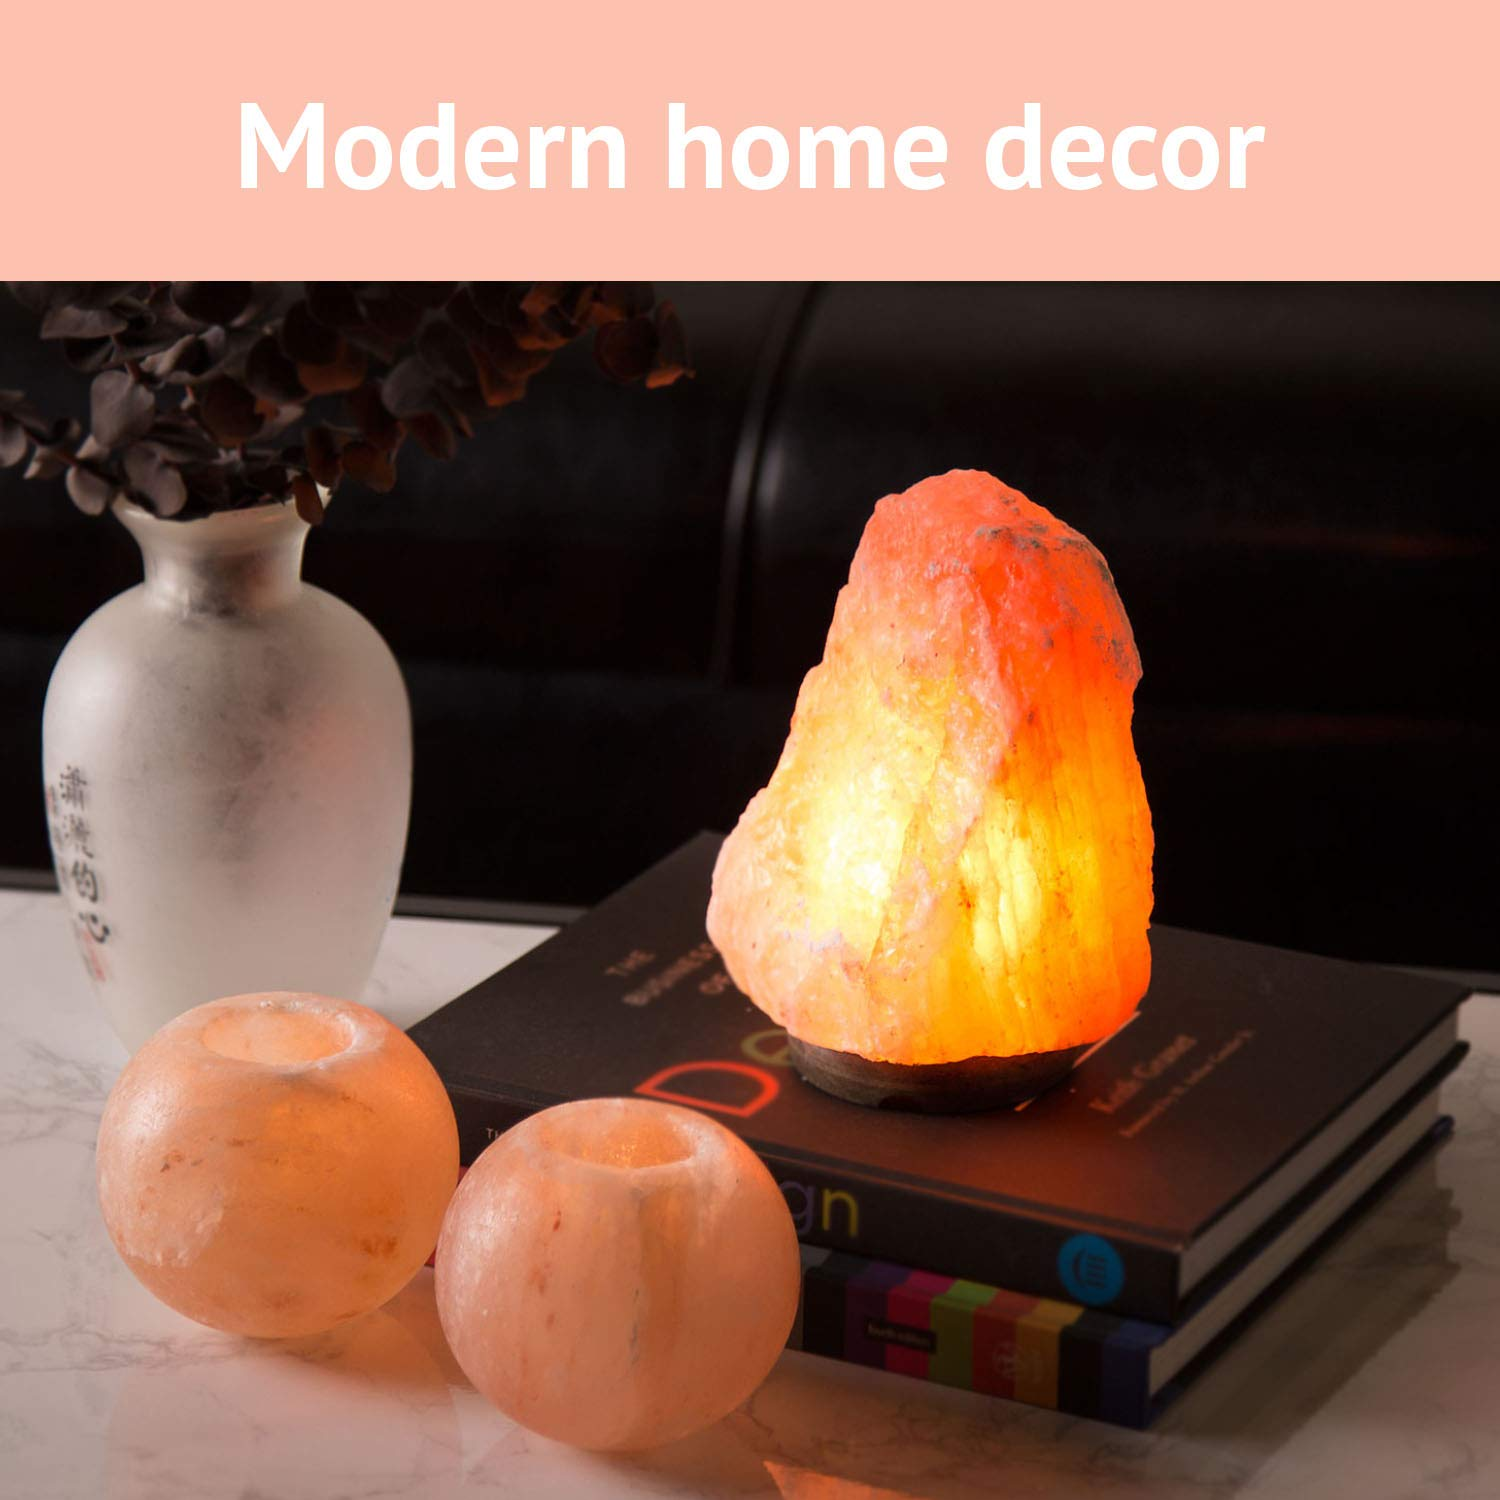 Crystal Allies: Set of 6 Natural 6'' to 8'', 5-8 lbs Himalayan Salt Lamp with Dimmable Switch and 6' UL-Listed Cord - Pack of 6 by Crystal Allies (Image #5)